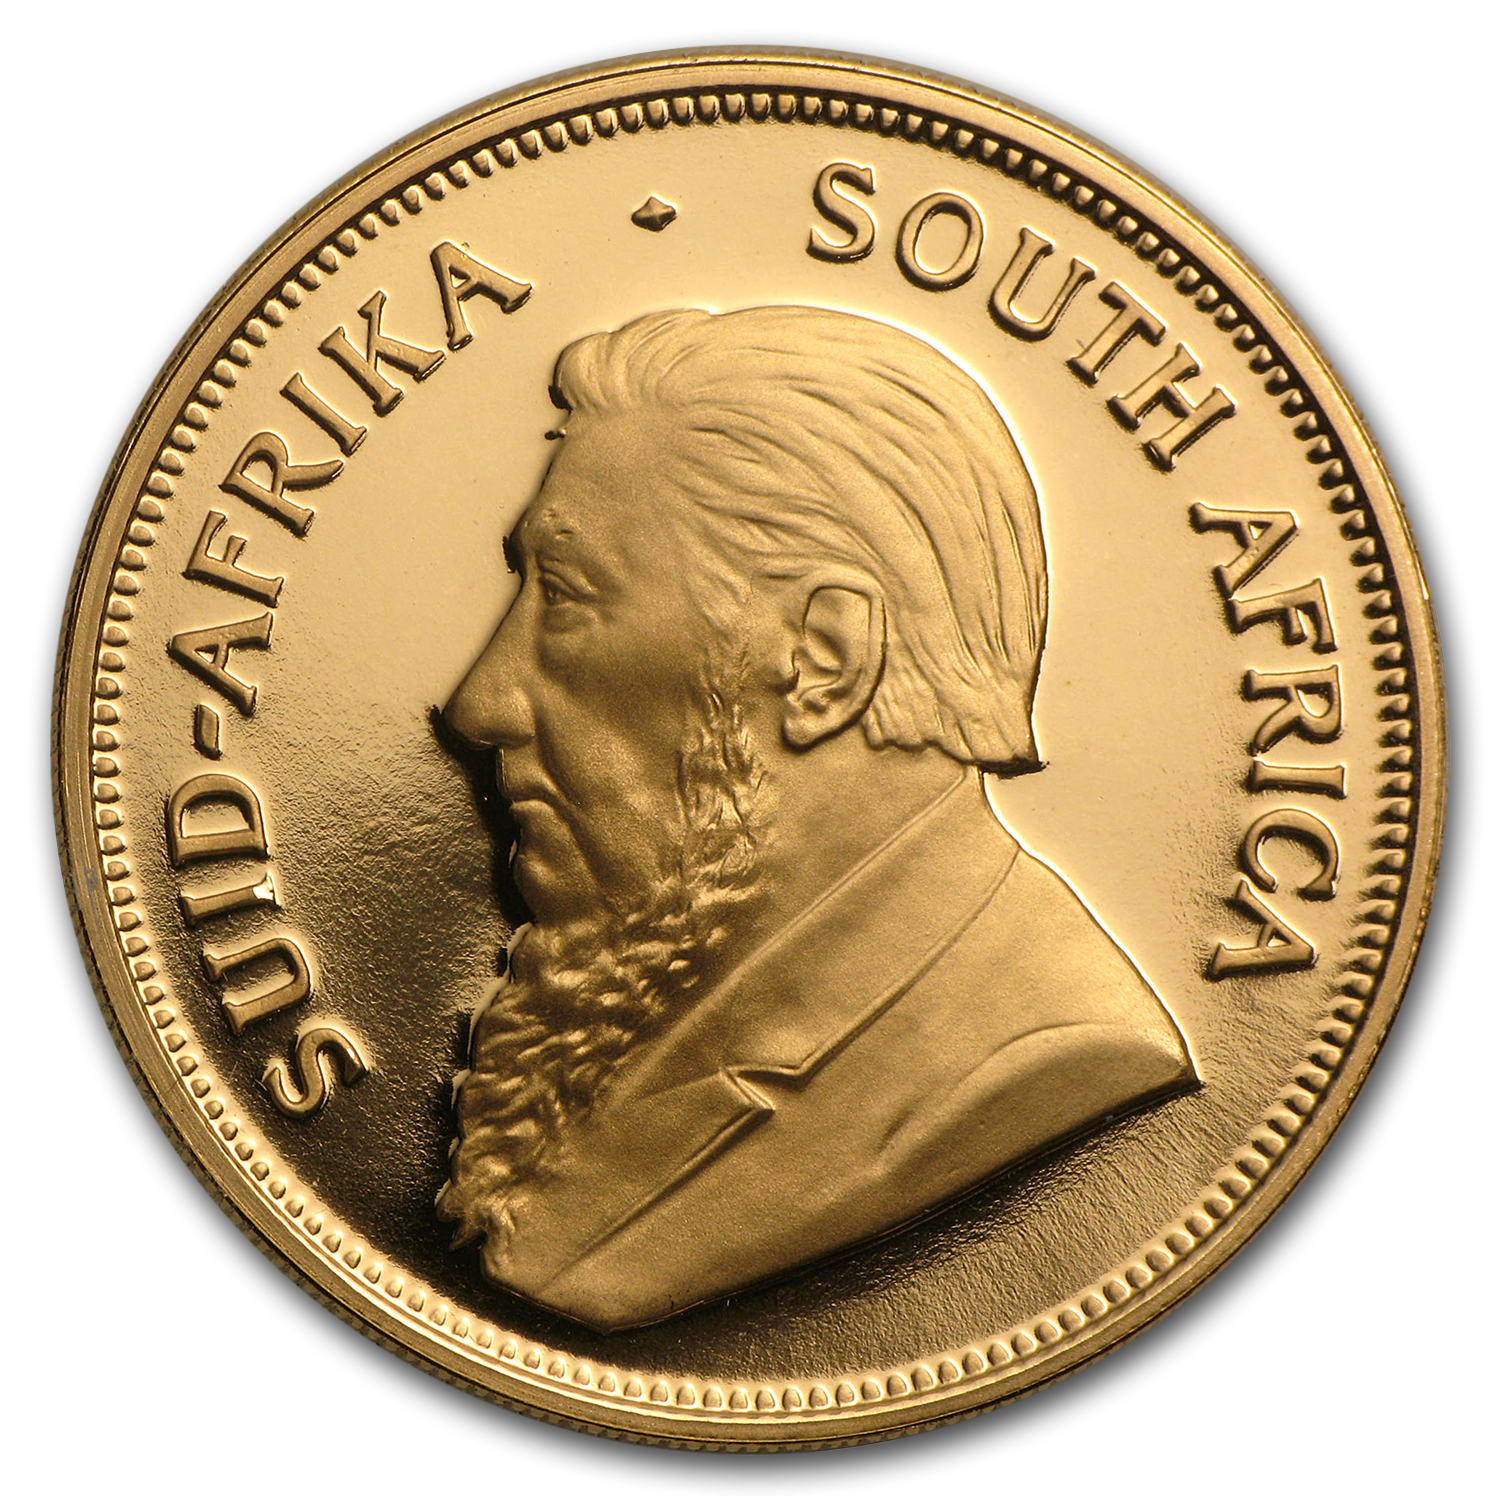 1999 South Africa 1 oz Gold Krugerrand